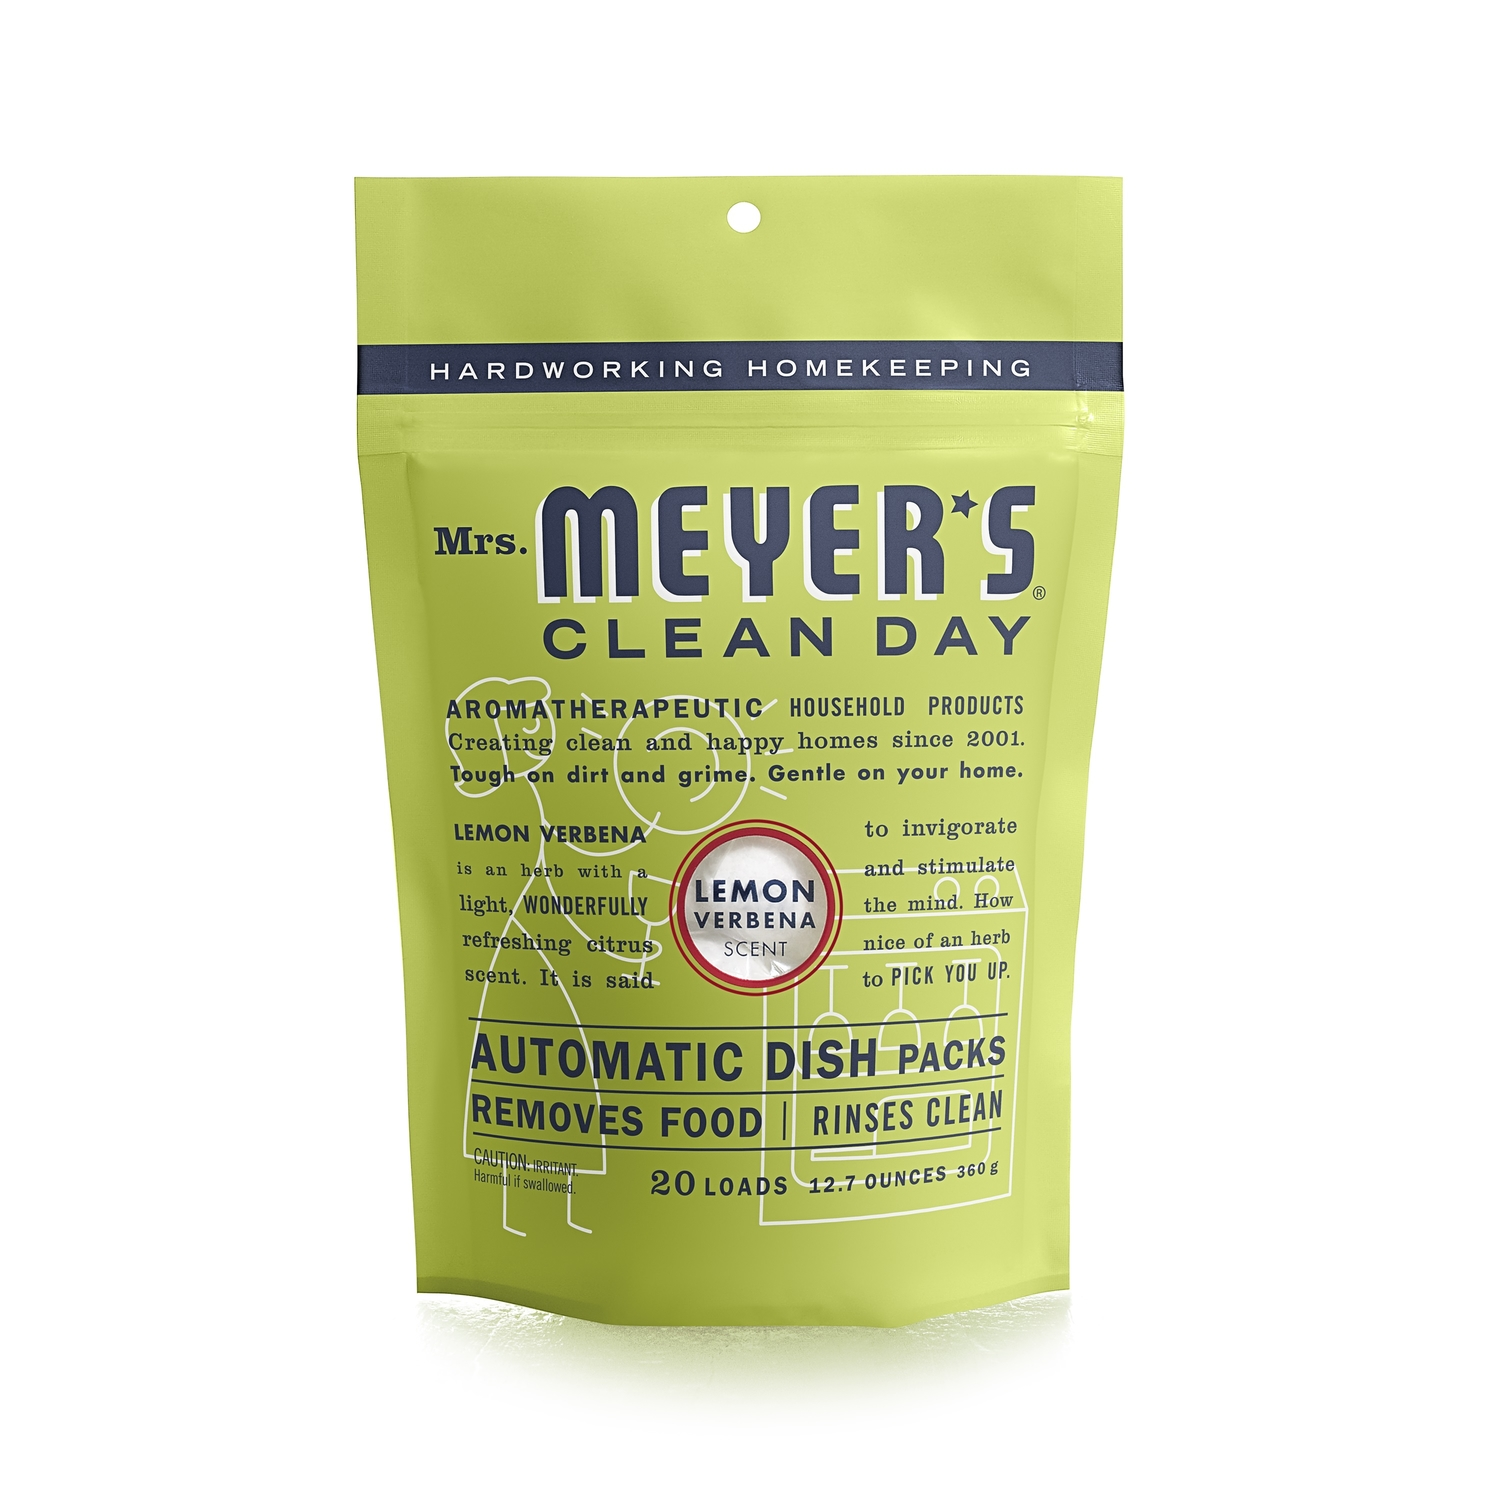 Mrs. Meyer's  Lemon Verbena Scent Powder  Dishwasher Detergent  12.7 oz. 20 pk